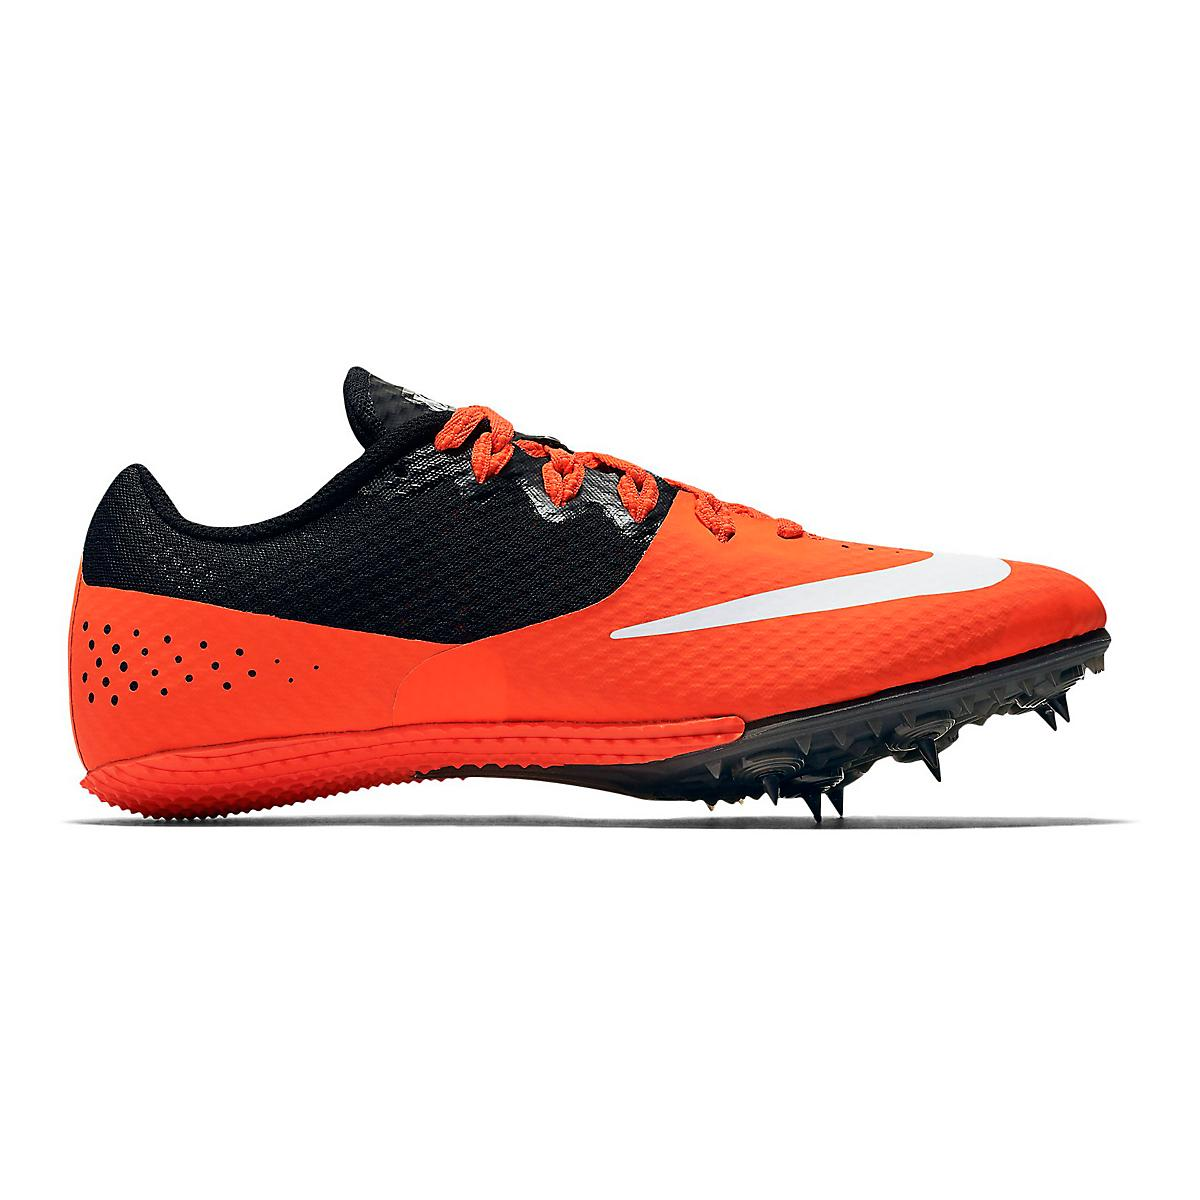 100% authentic 20162 c0dbc Womens Nike Zoom Rival S 8 Track and Field Shoe at Road Runn